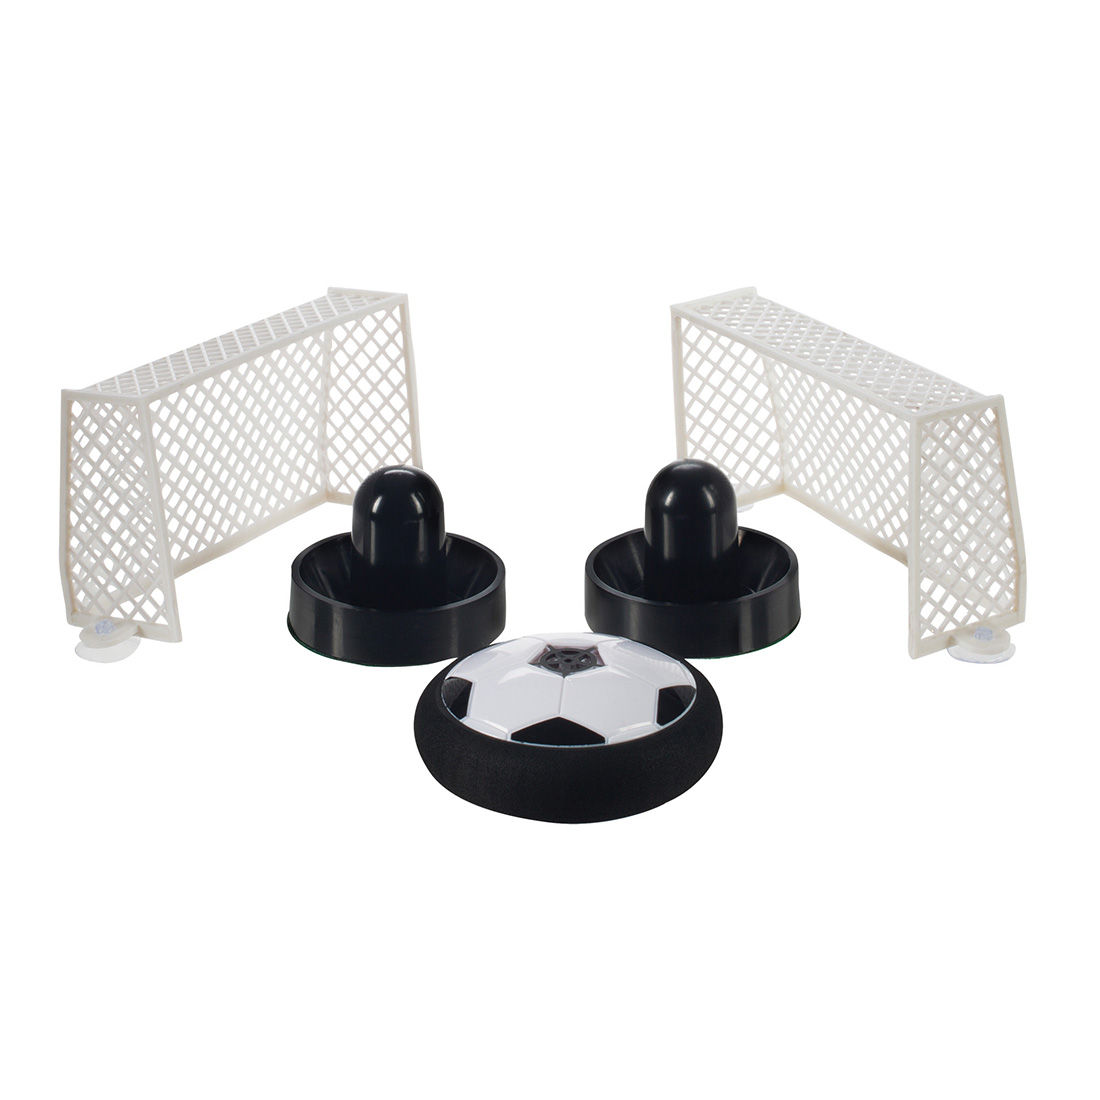 Alta Air Hockey Soccer Tabletop Game with Nets and Soccer Style Puck Play on any Table! by Alta